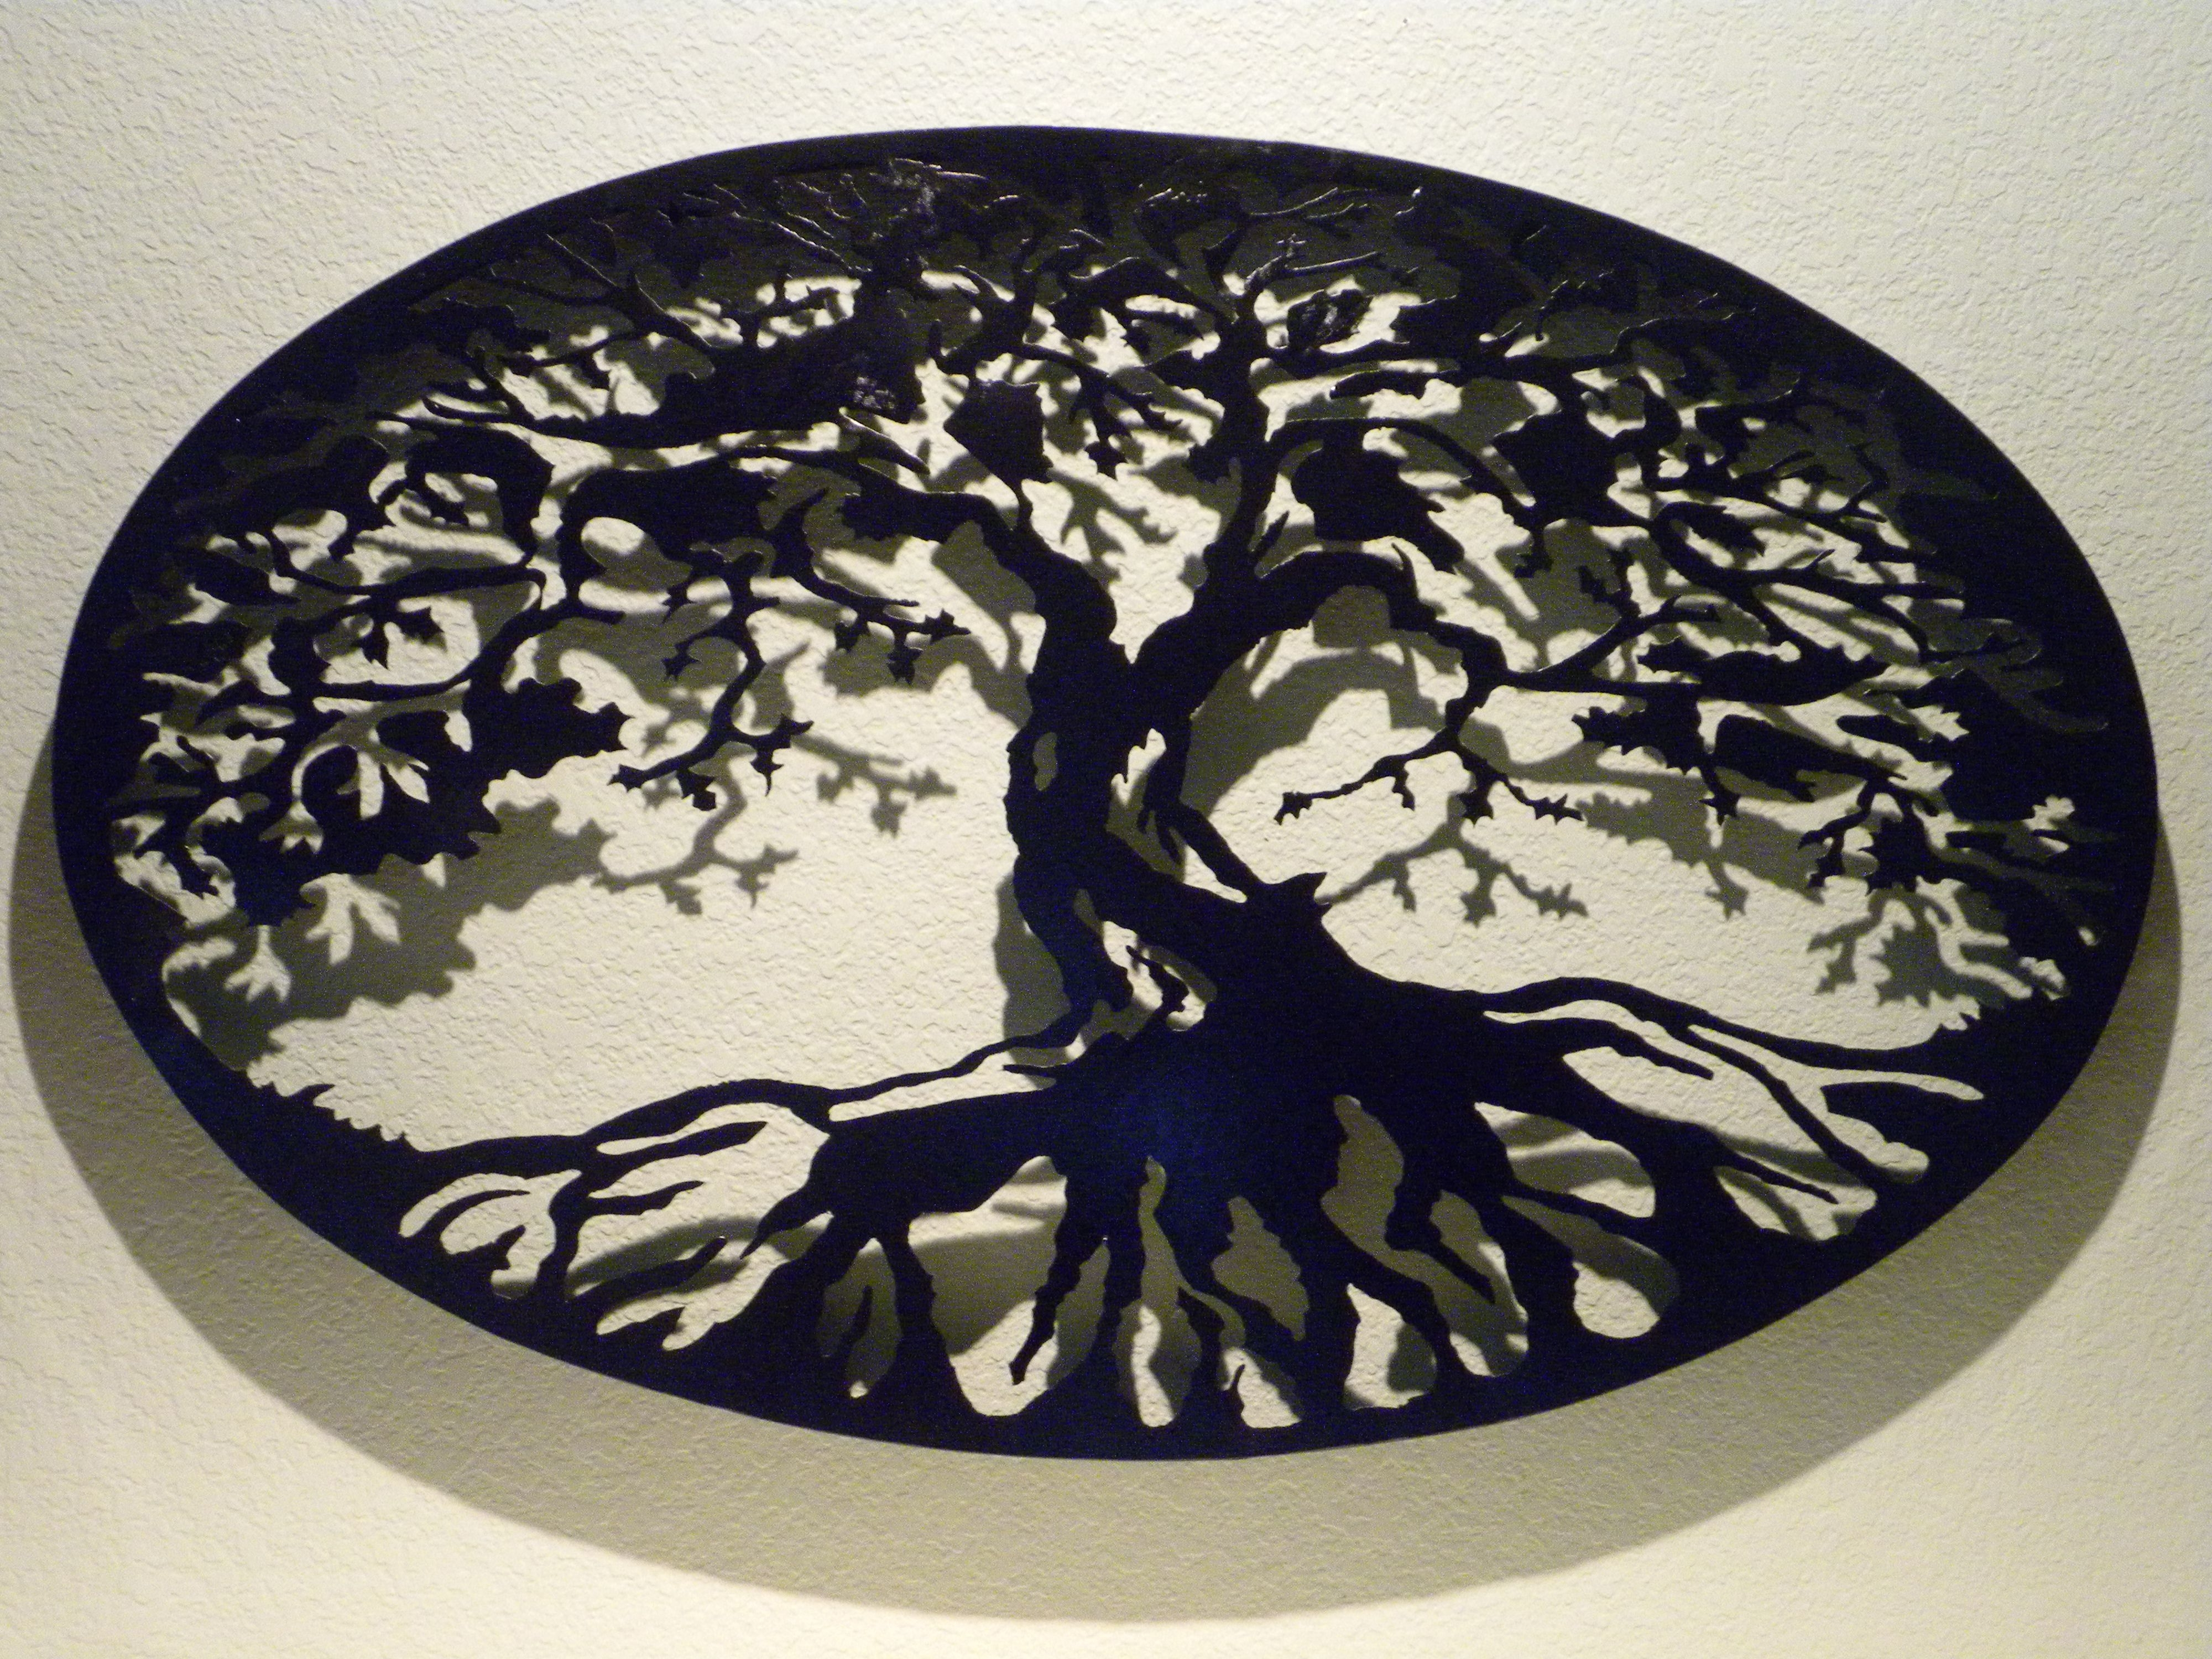 Buy A Custom Oval Tree Of Life Metal Wall Art, Made To Order From For Most Recently Released Tree Of Life Wall Art (View 3 of 15)